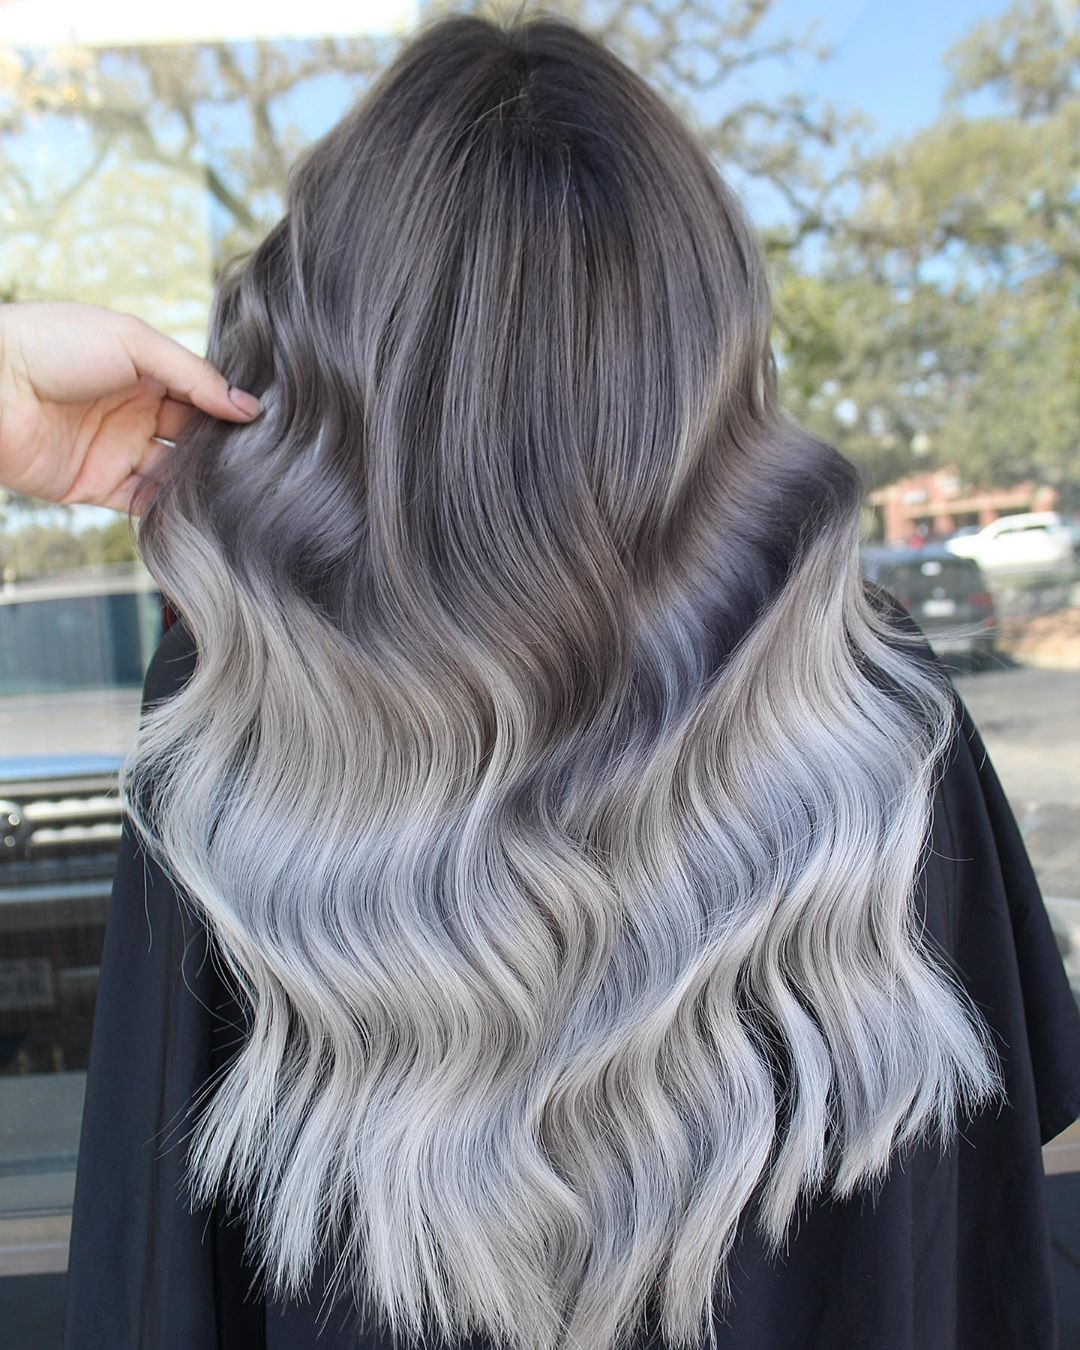 Long Brown to Silver Ombre Hair